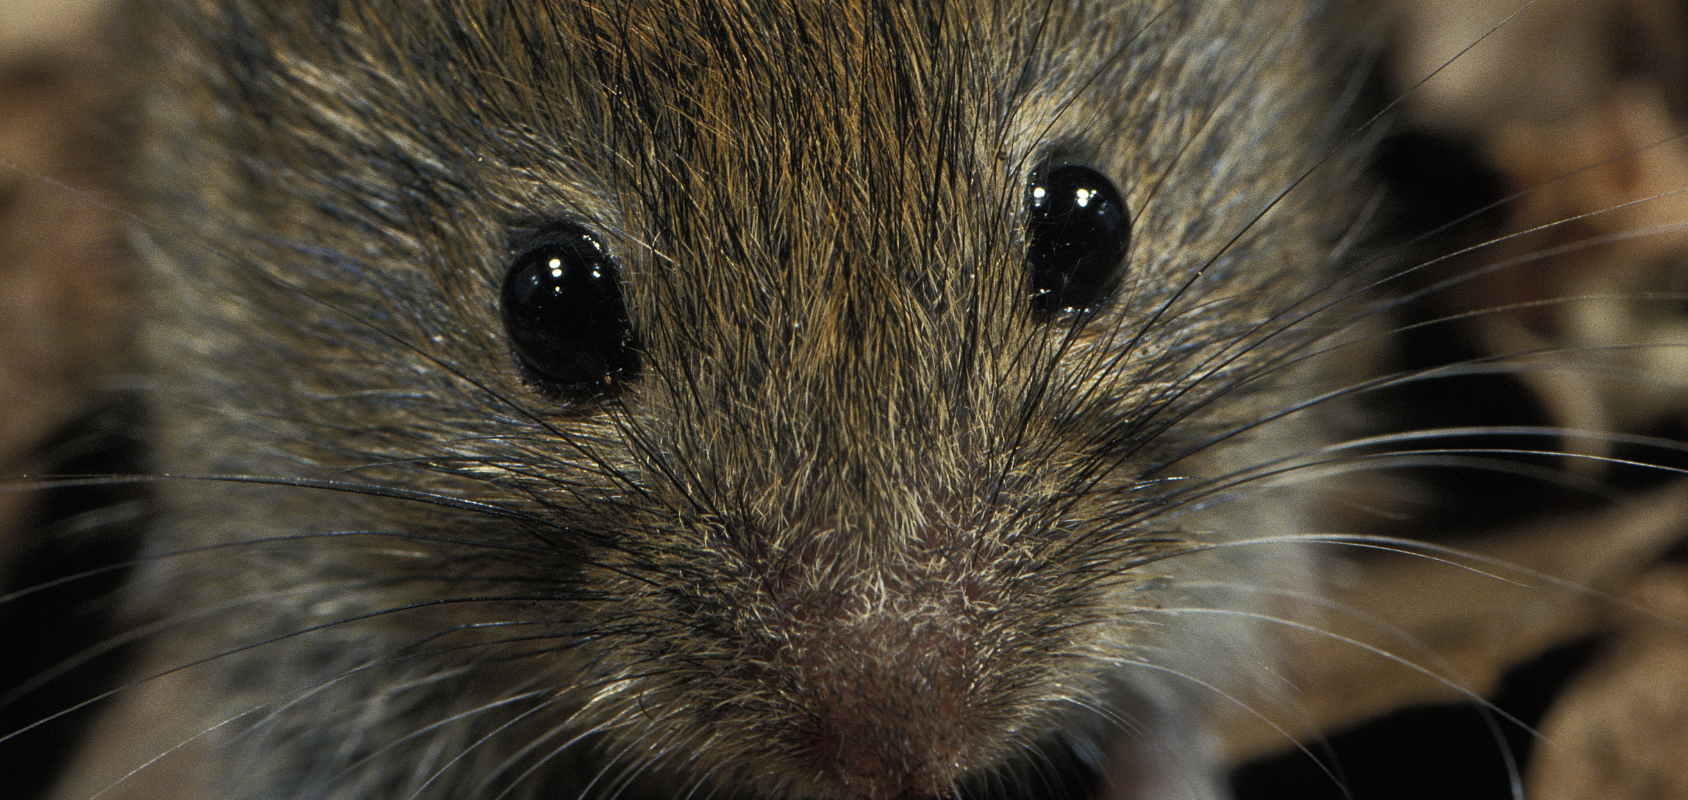 A close up of a vole